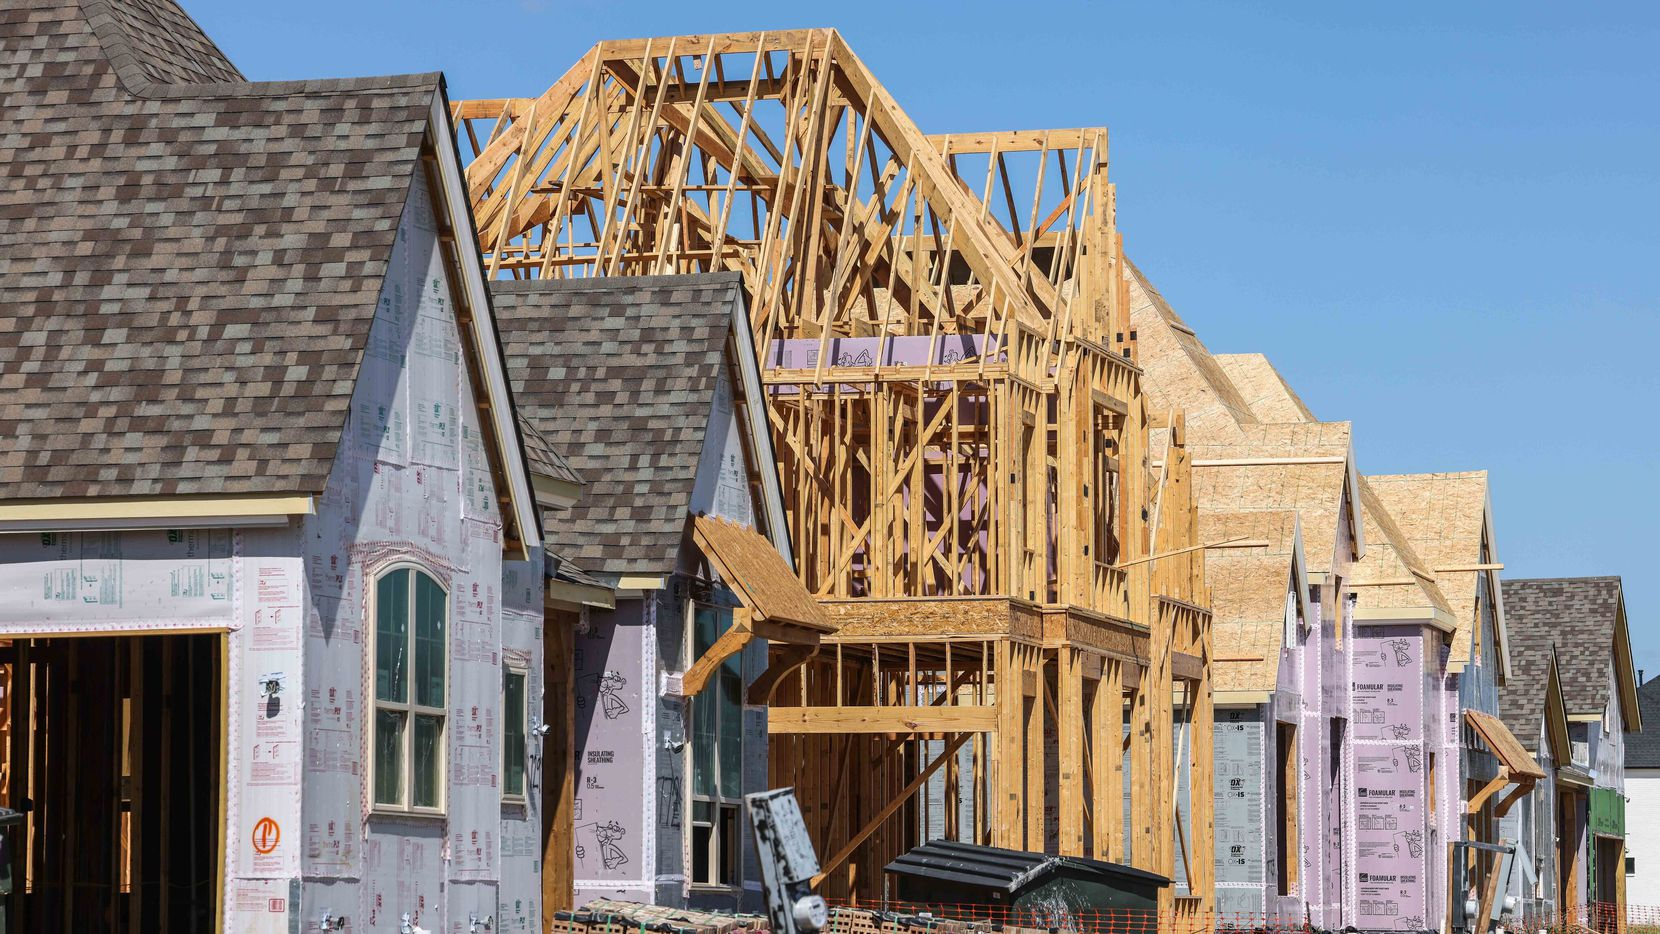 Construction material shortages and supply chain issues are adding months to home construction times.